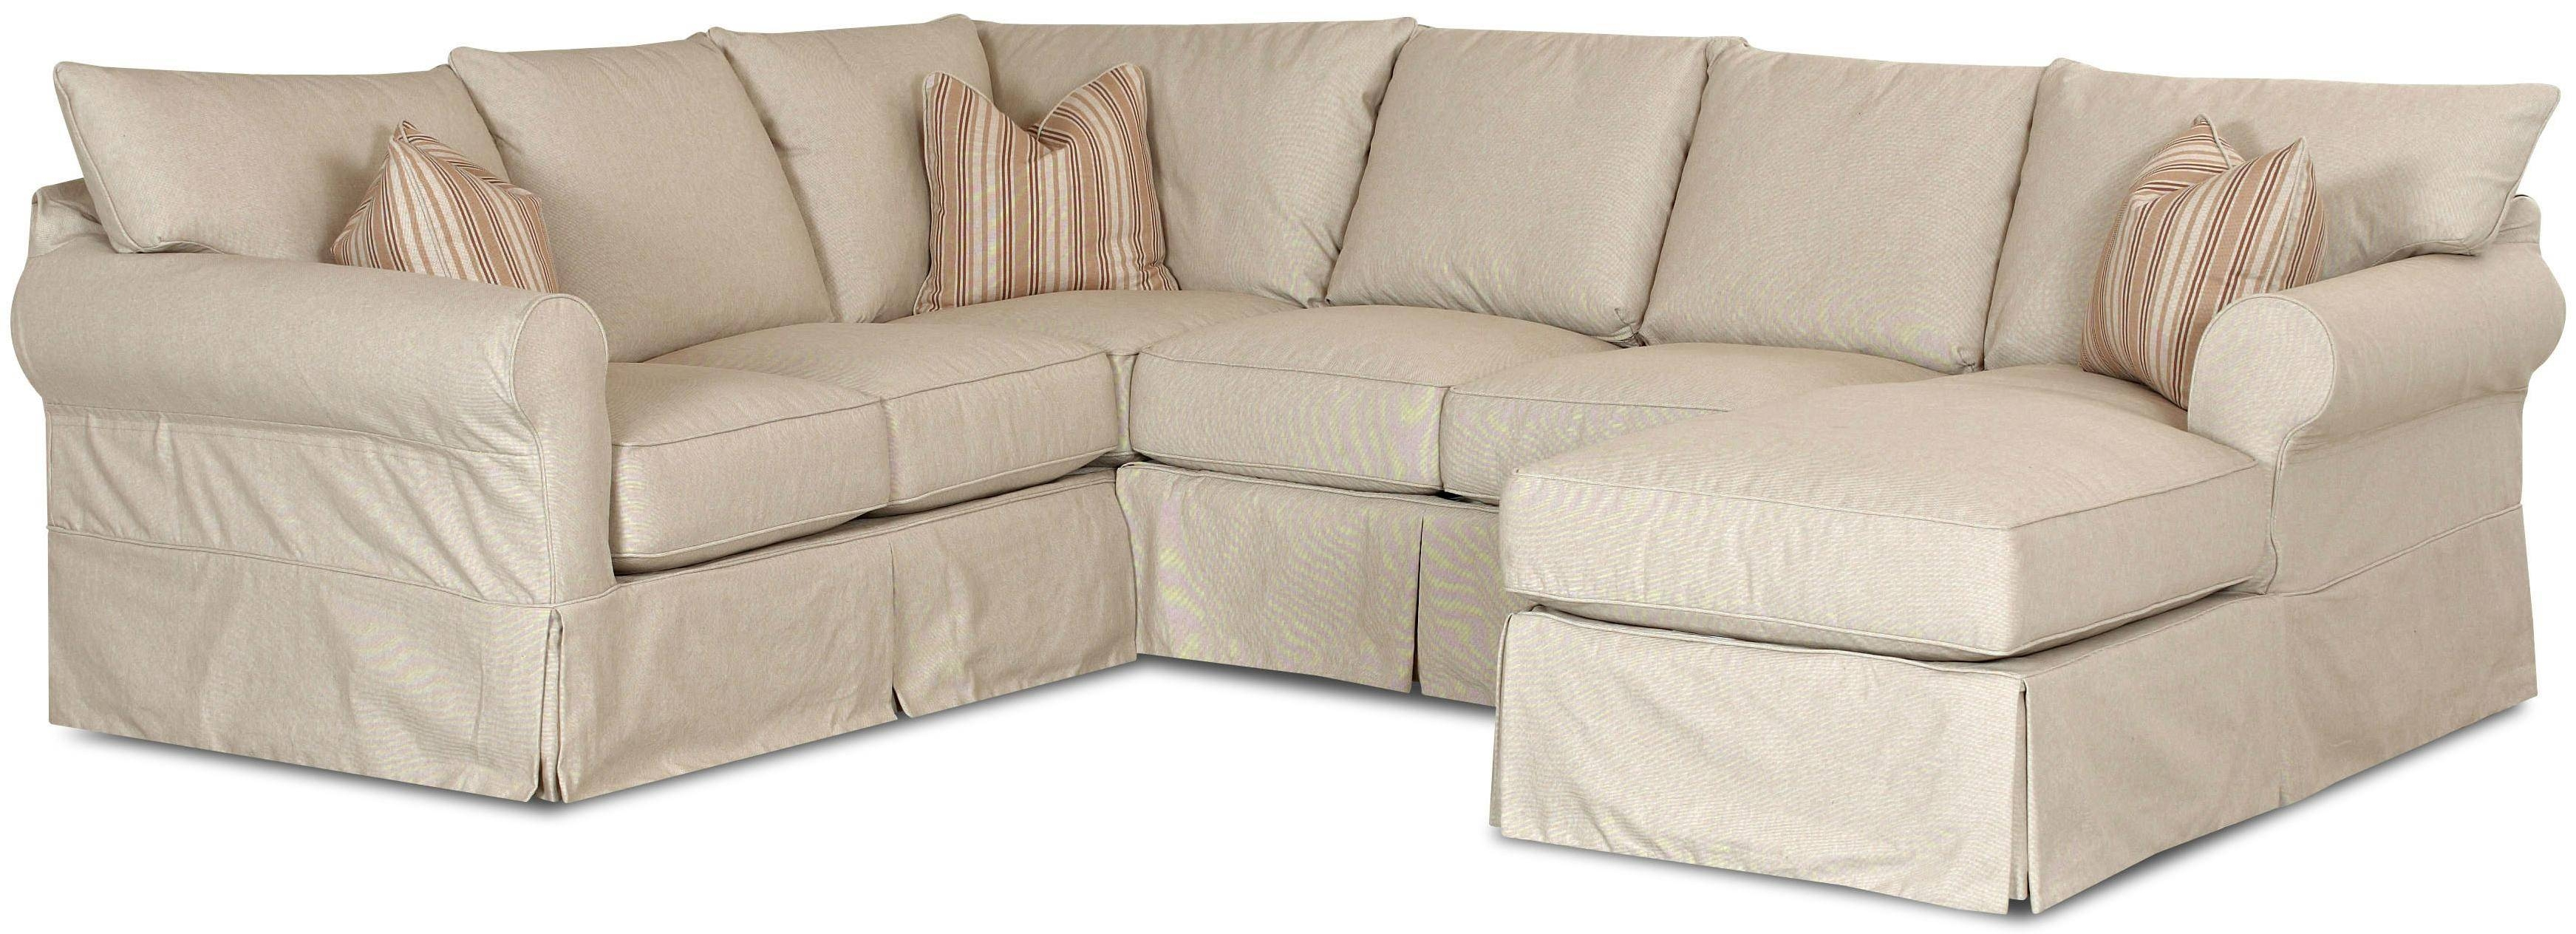 Decorating: Couch Cheap Slipcovers With Wood Legs For Cool Home inside Cool Cheap Sofas (Image 9 of 30)